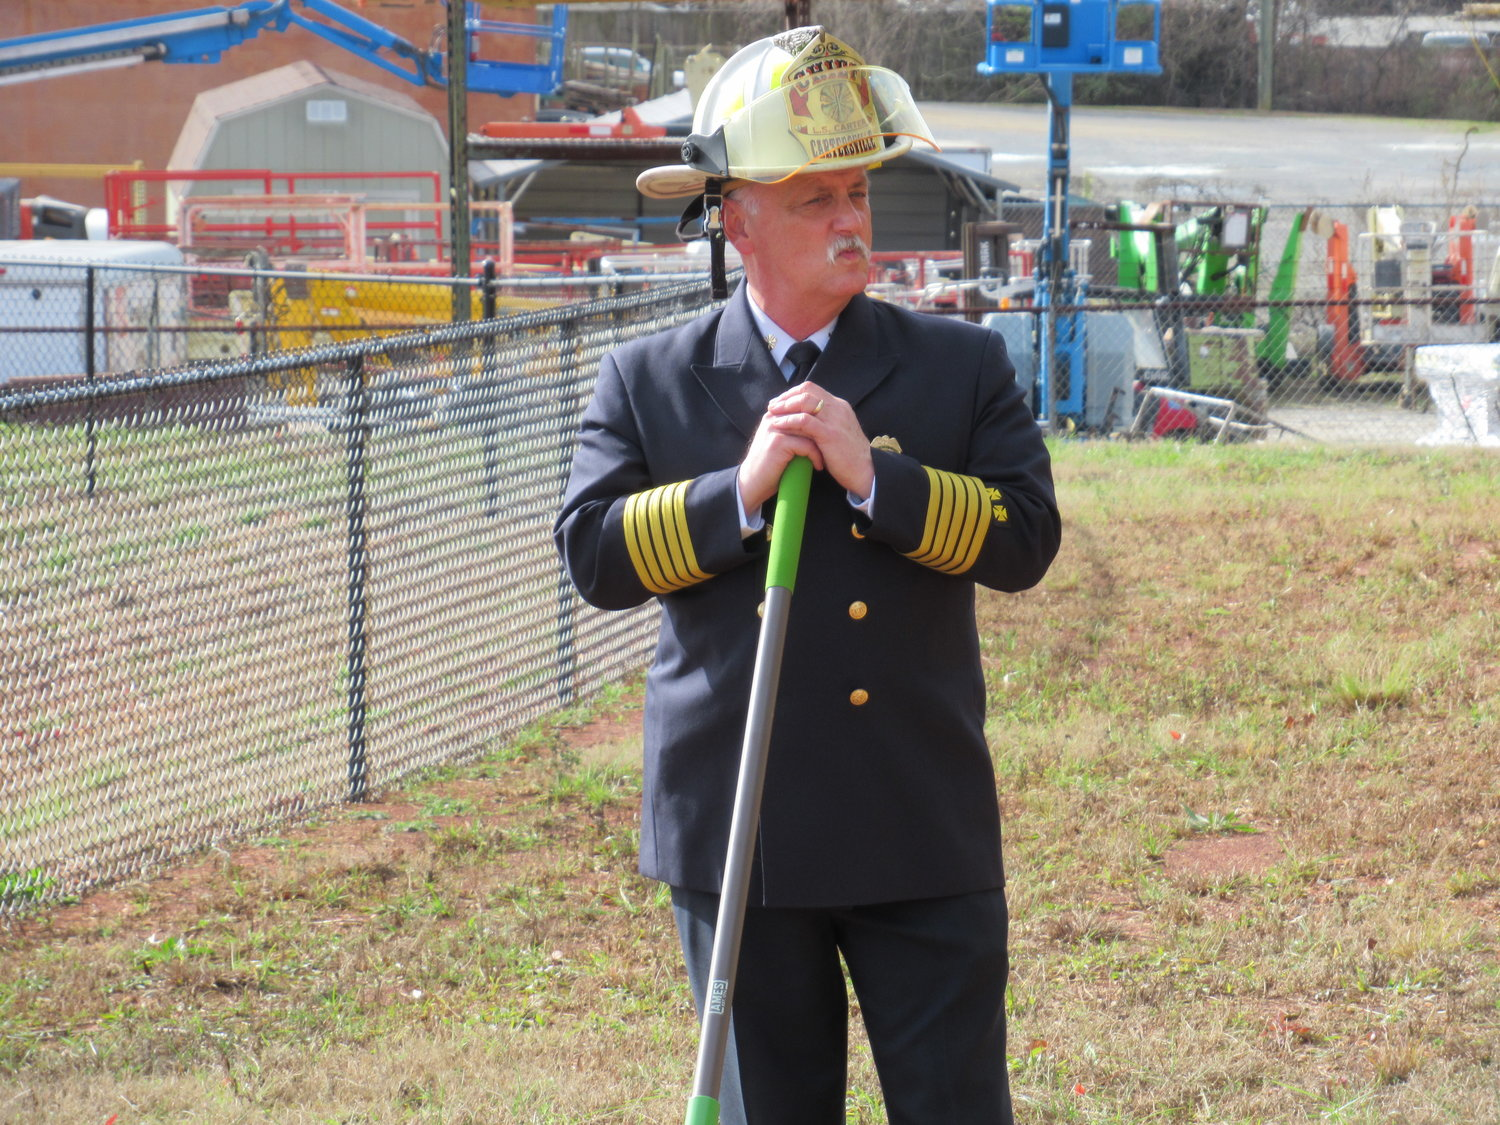 Cartersville Fire Chief Scott Carter said he's been waiting to see construction get underway on the new No. 3 fire station since 2007.